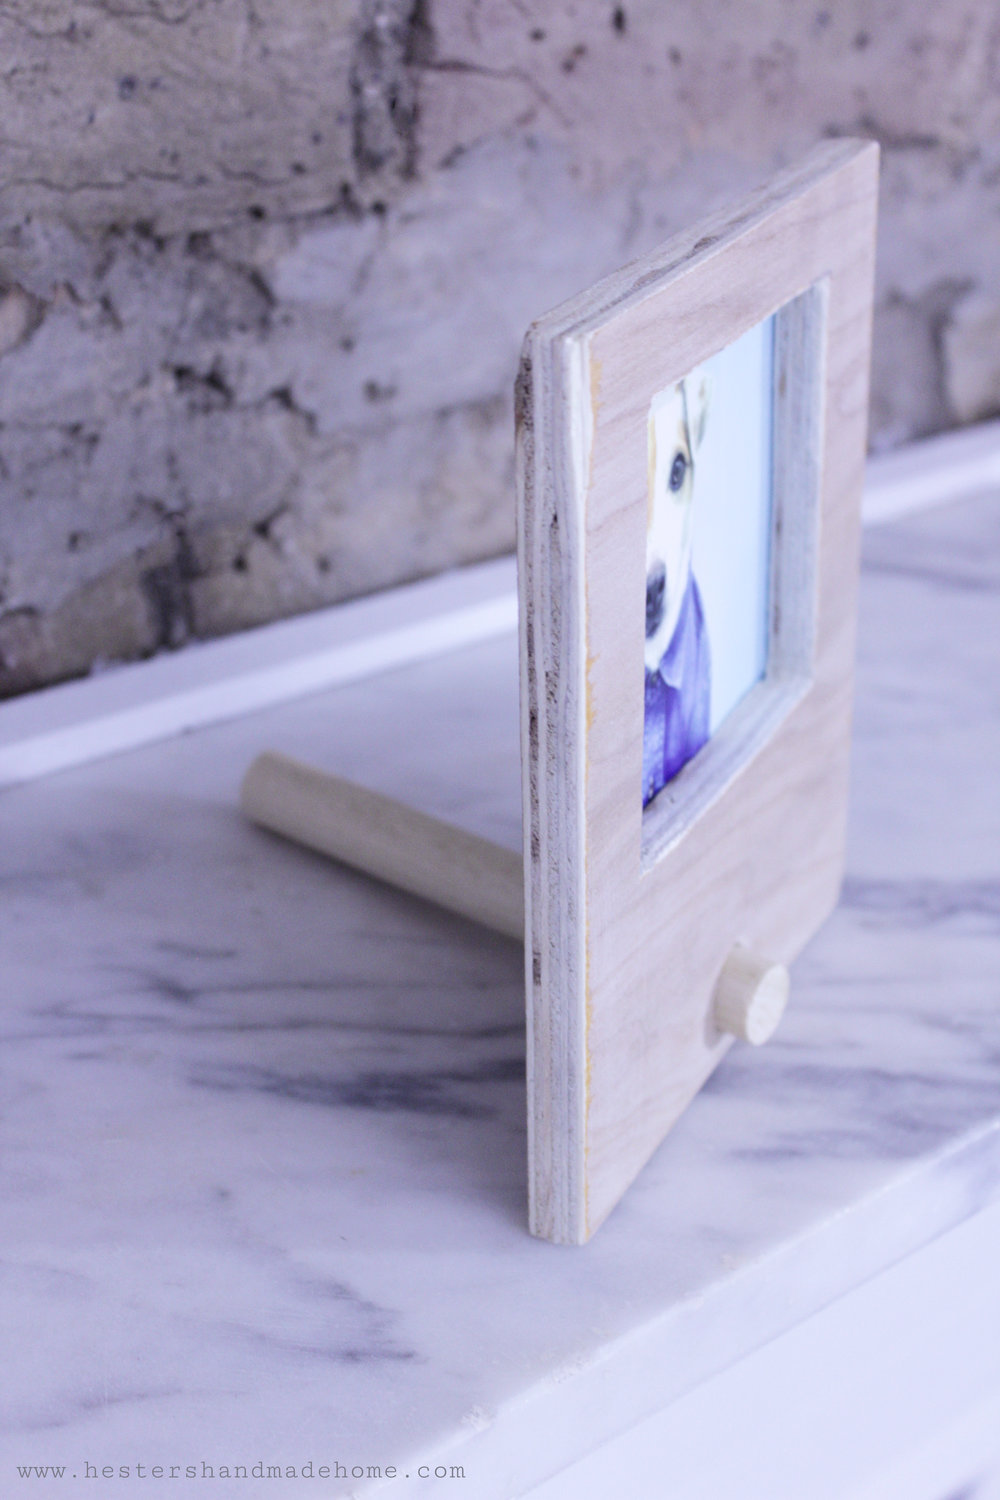 Handmade photo frame for your Instagram shots. Tutorial by www.hestershandmadehome.com